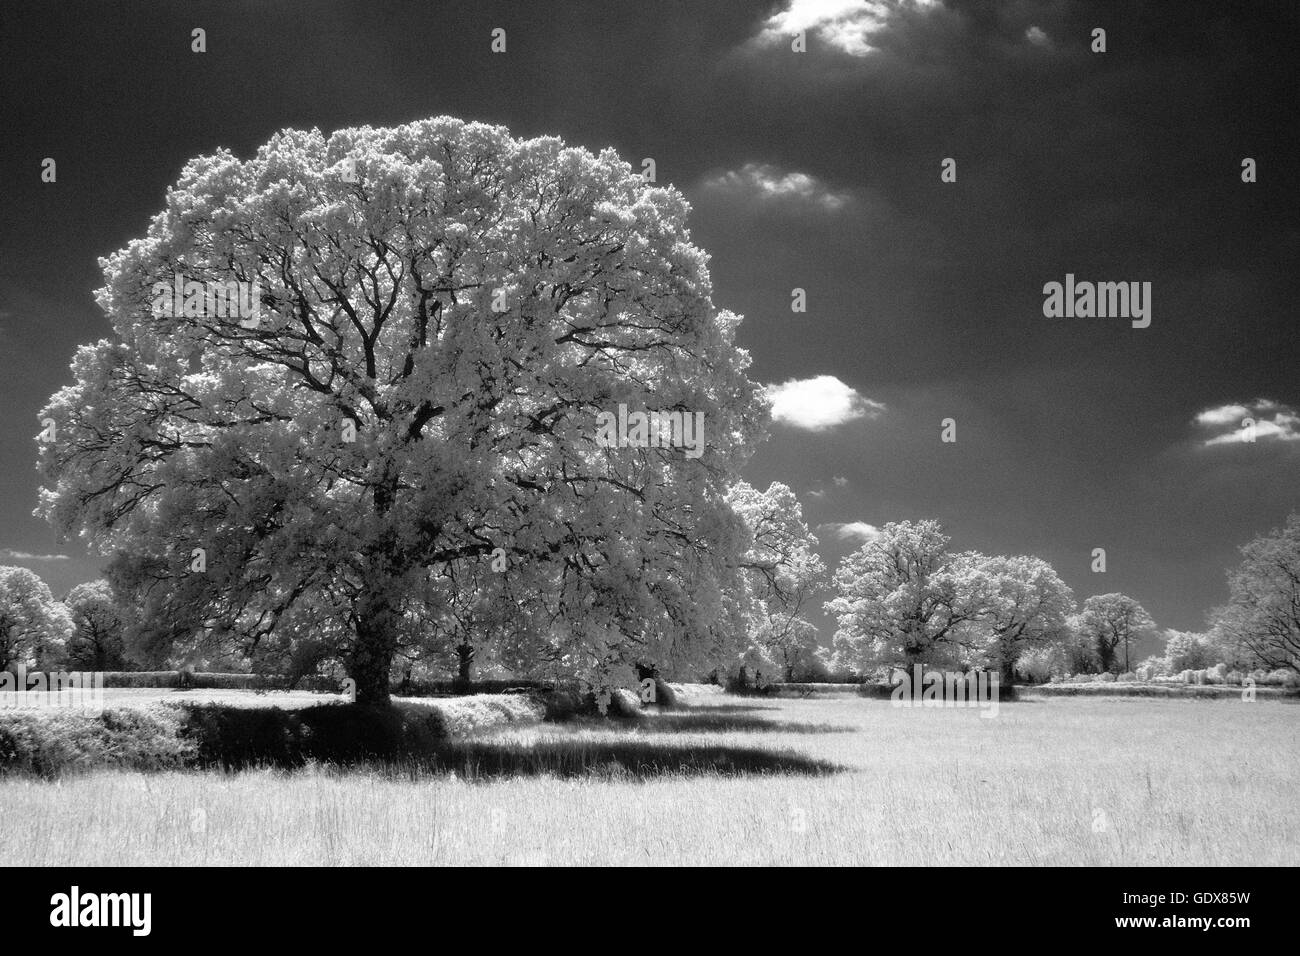 Infra-Red Trees and Field,Hampshire,England - Stock Image